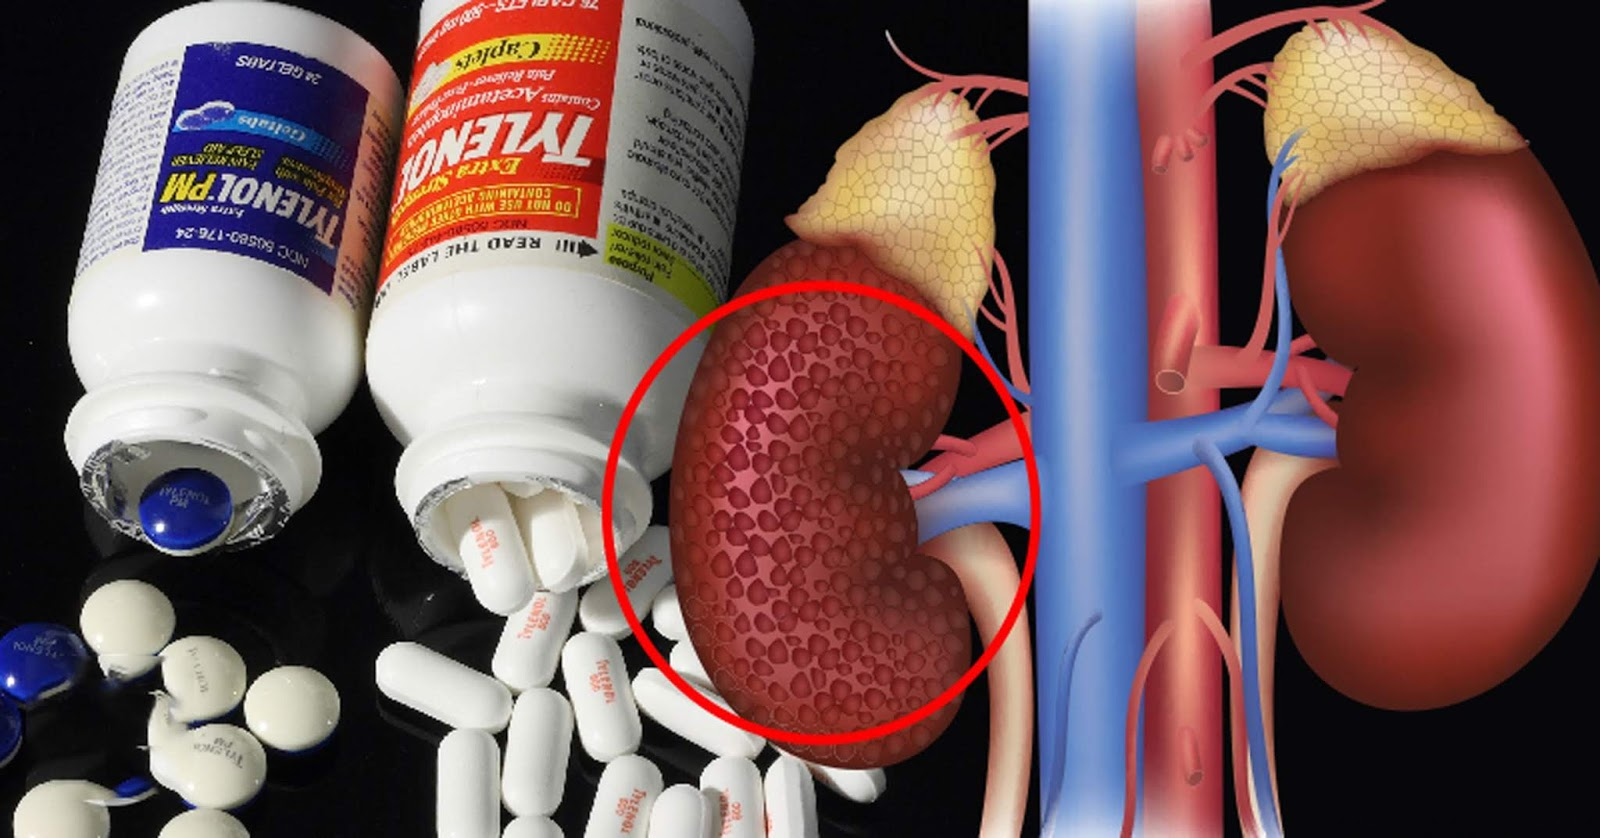 9 Things You Are Doing That are Killing Your Kidneys That You Need to Stop Doing Immediately